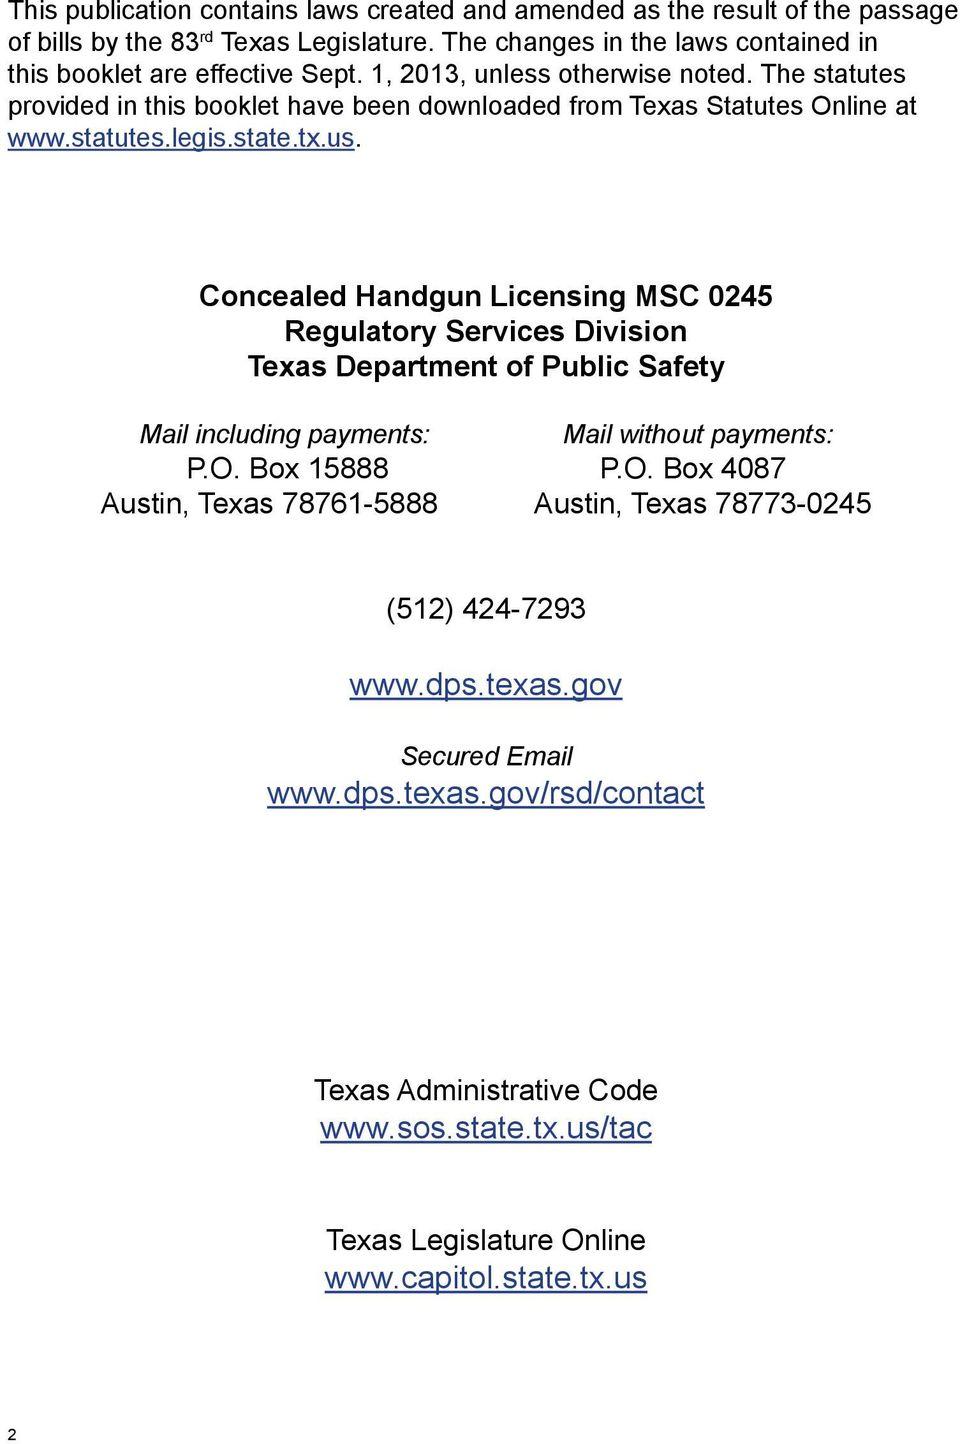 The statutes provided in this booklet have been downloaded from Texas Statutes Online at www.statutes.legis.state.tx.us.